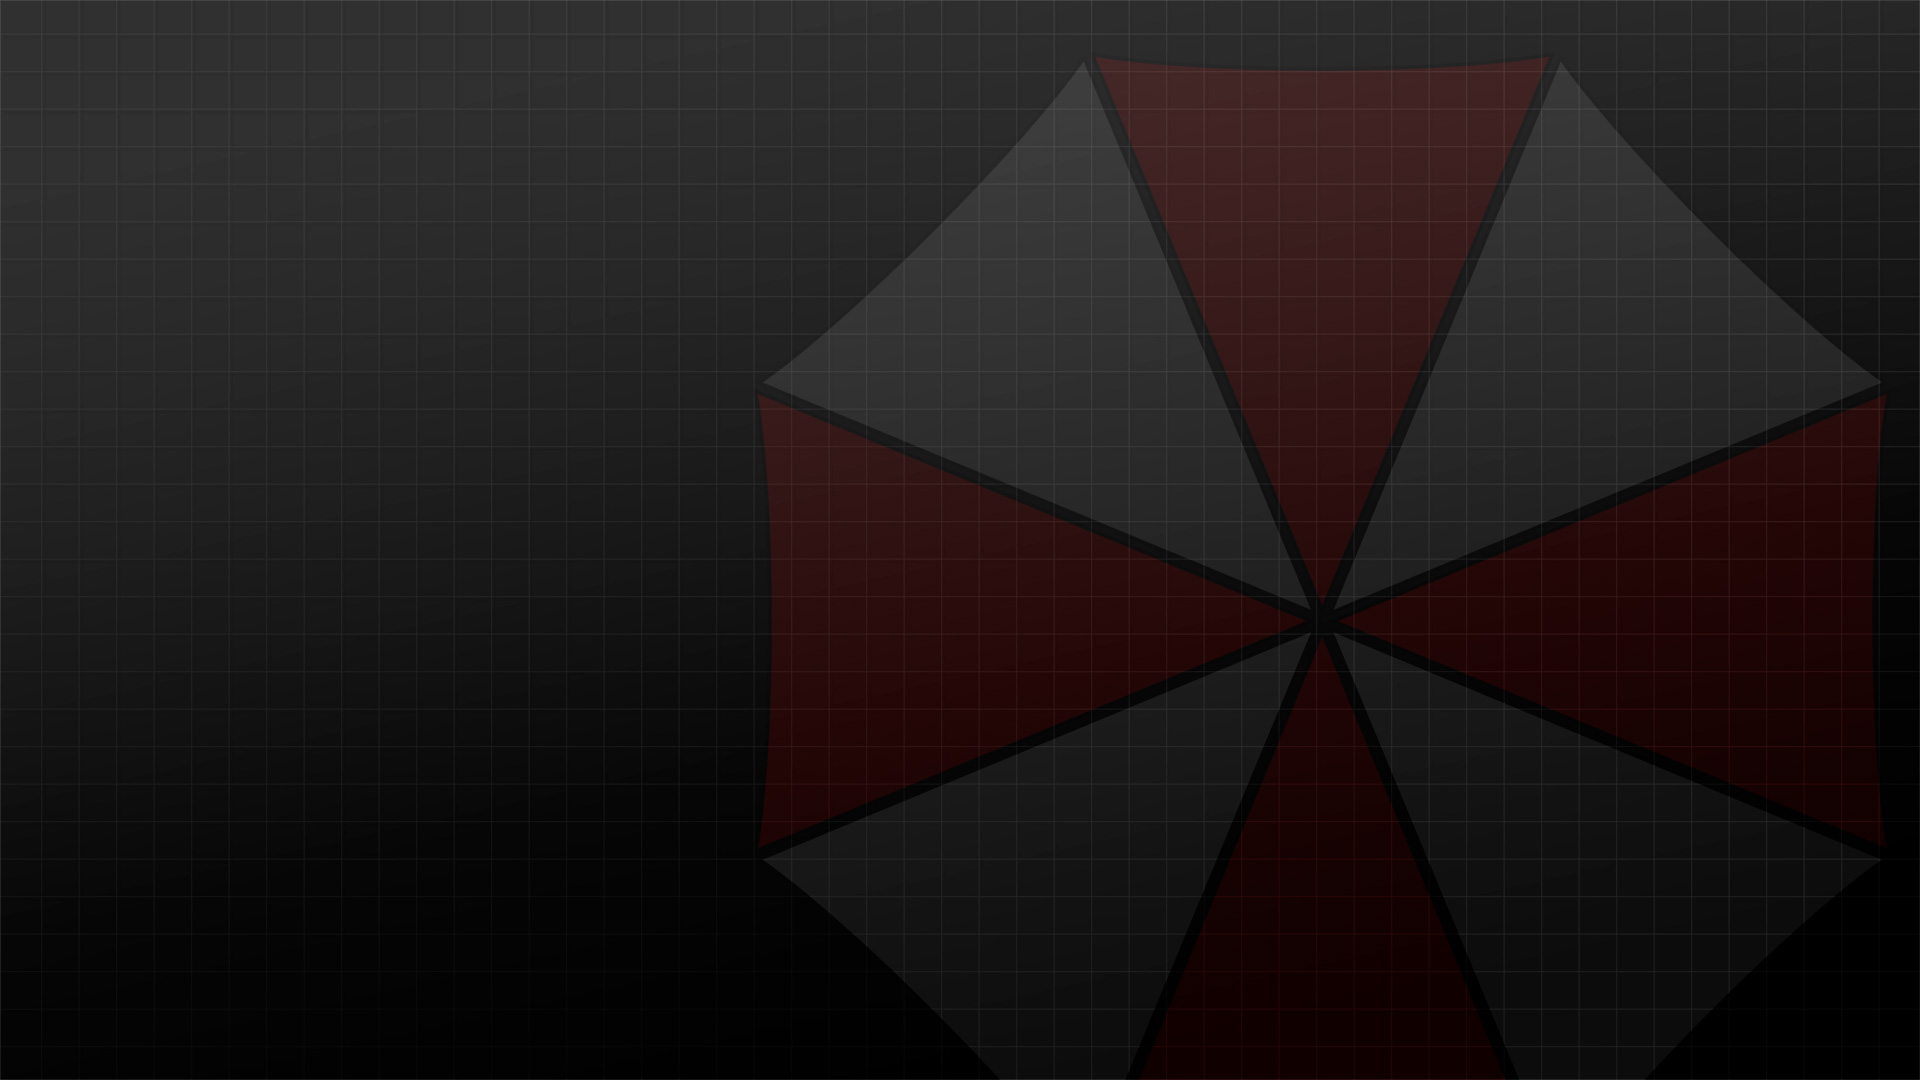 Umbrella corporation background wallpapersafari - Umbrella corporation wallpaper hd 1366x768 ...